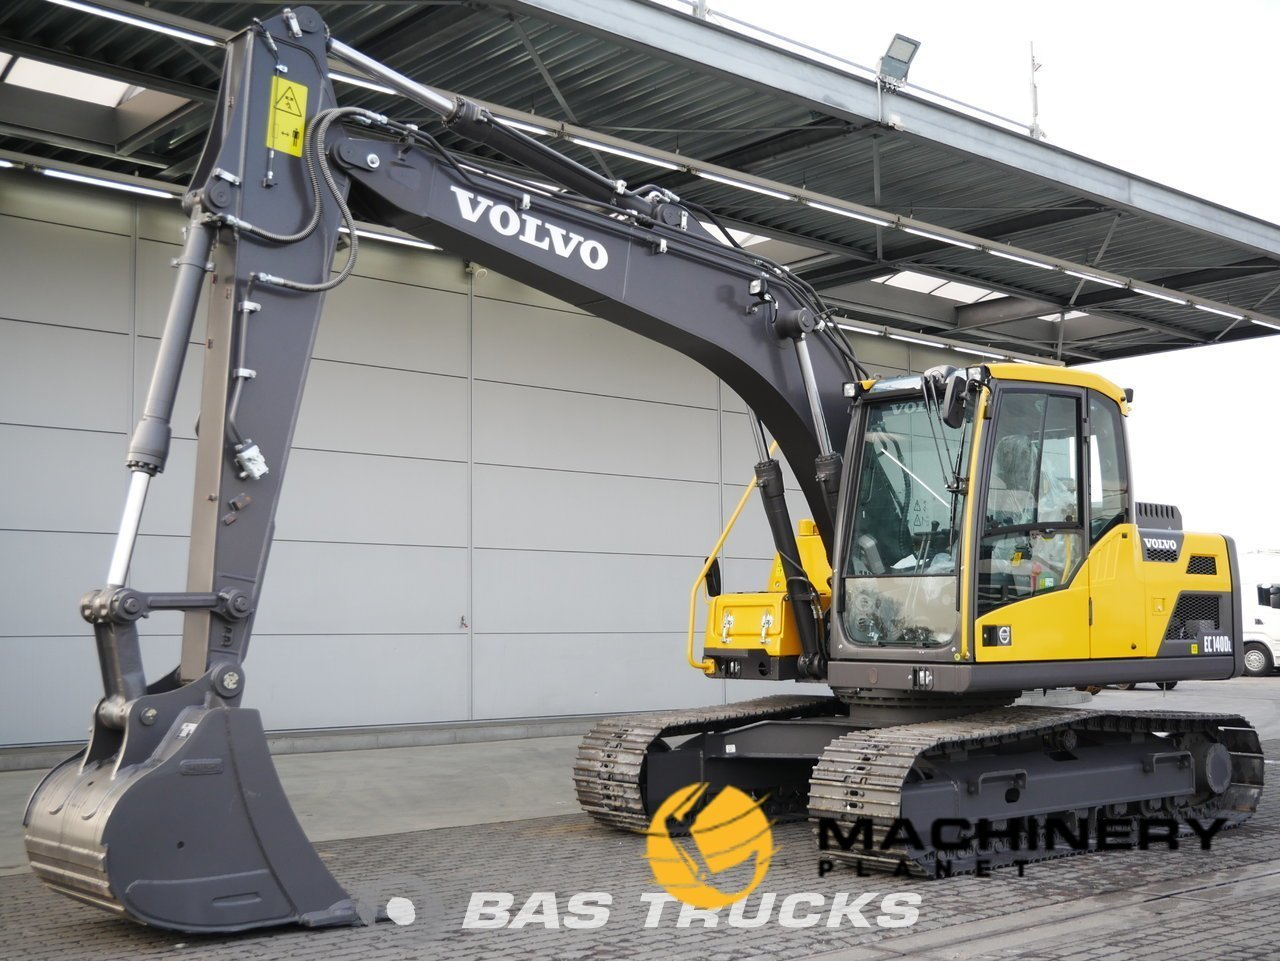 Used-Construction-equipment-Volvo-EC140DL-Track-2018_141855_1-1554203386524_5ca342fa7fea5-1.jpg